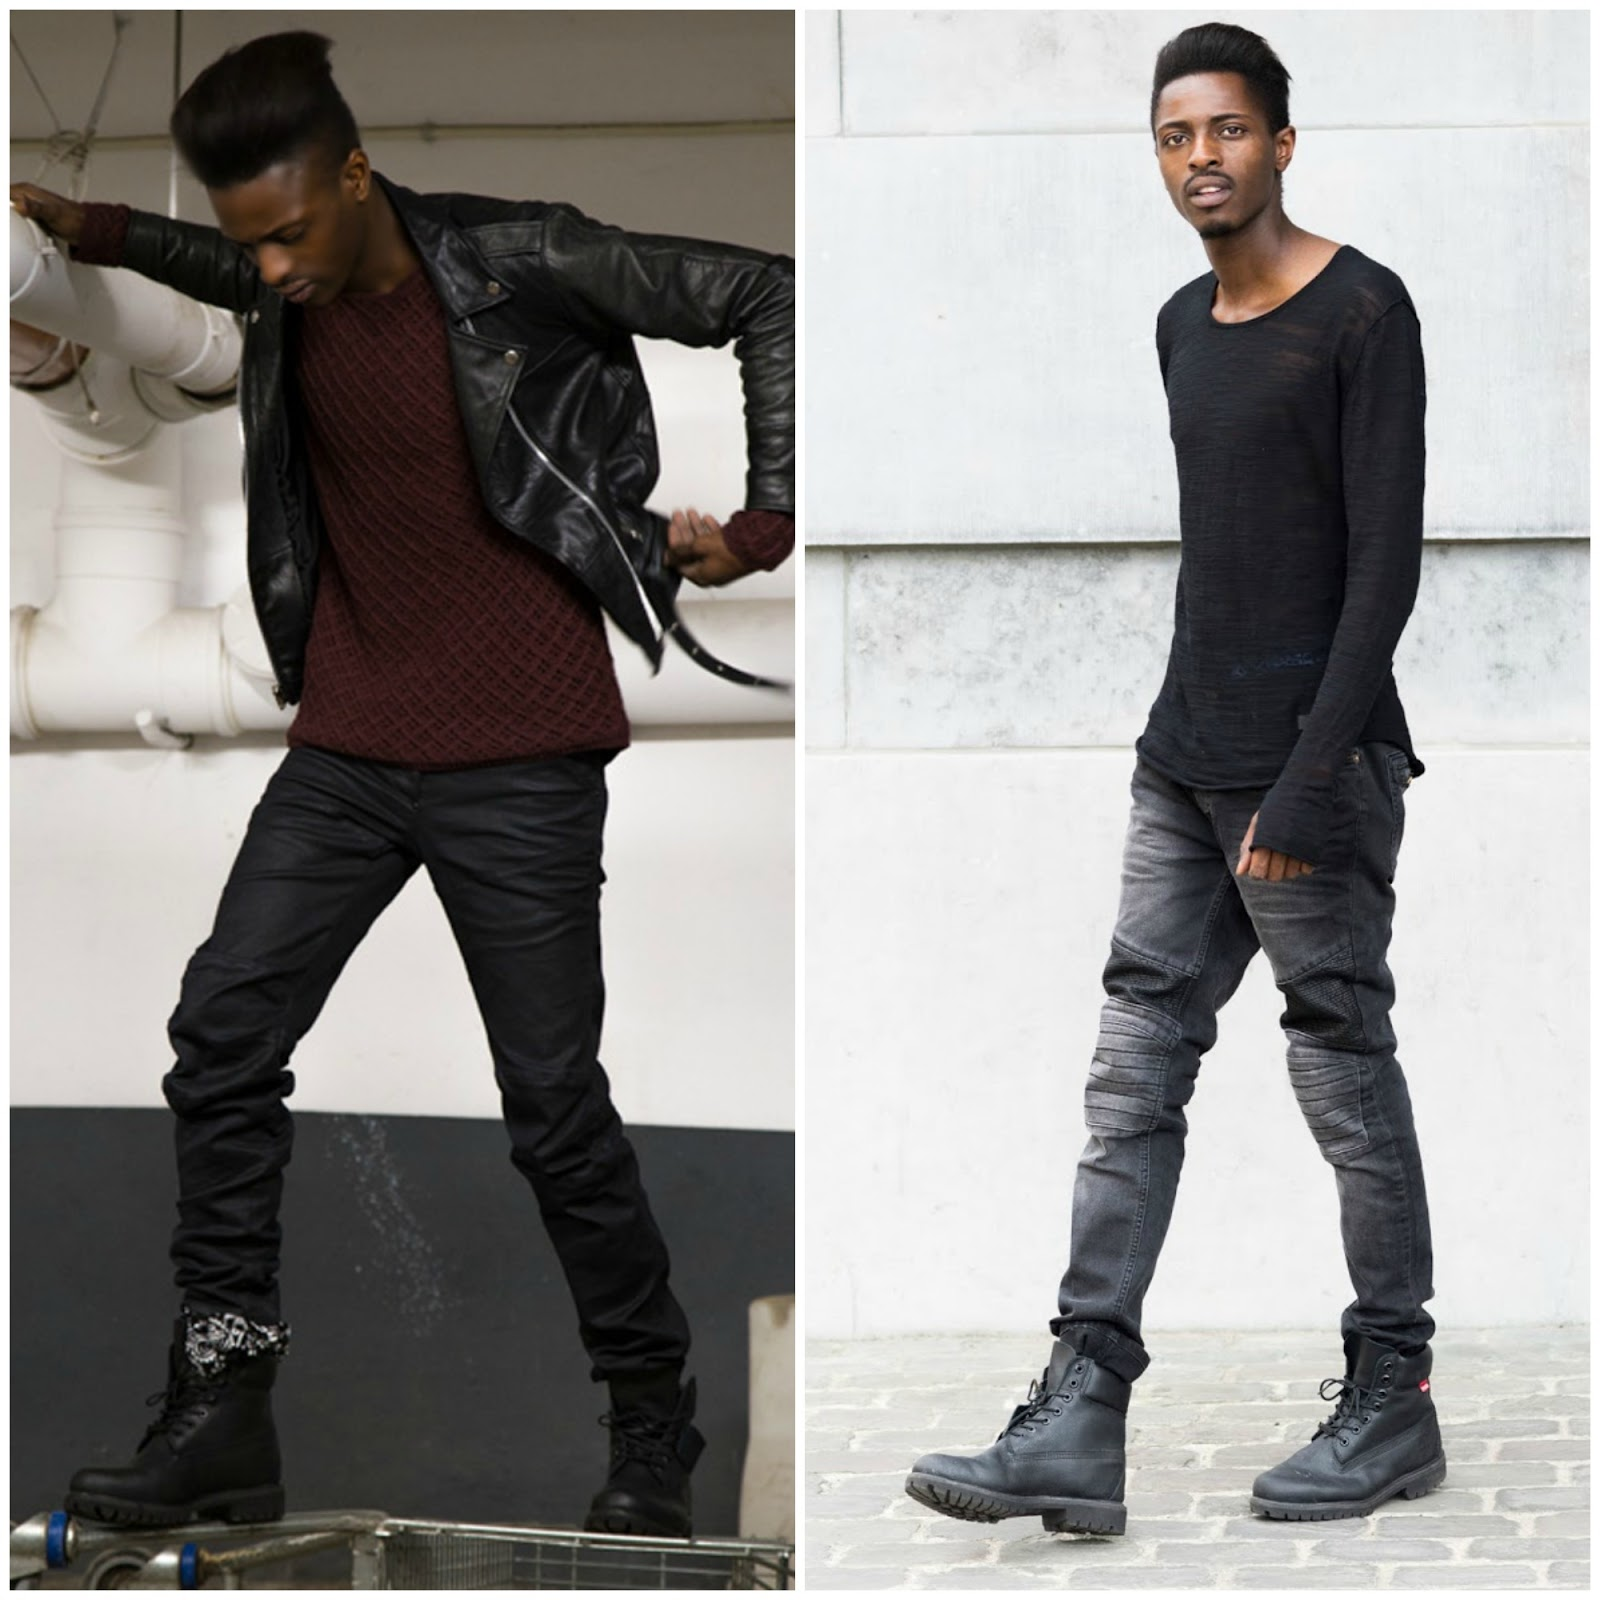 5 Personal Style Tips on How To Wear Timberland Boots / Jon The Gold